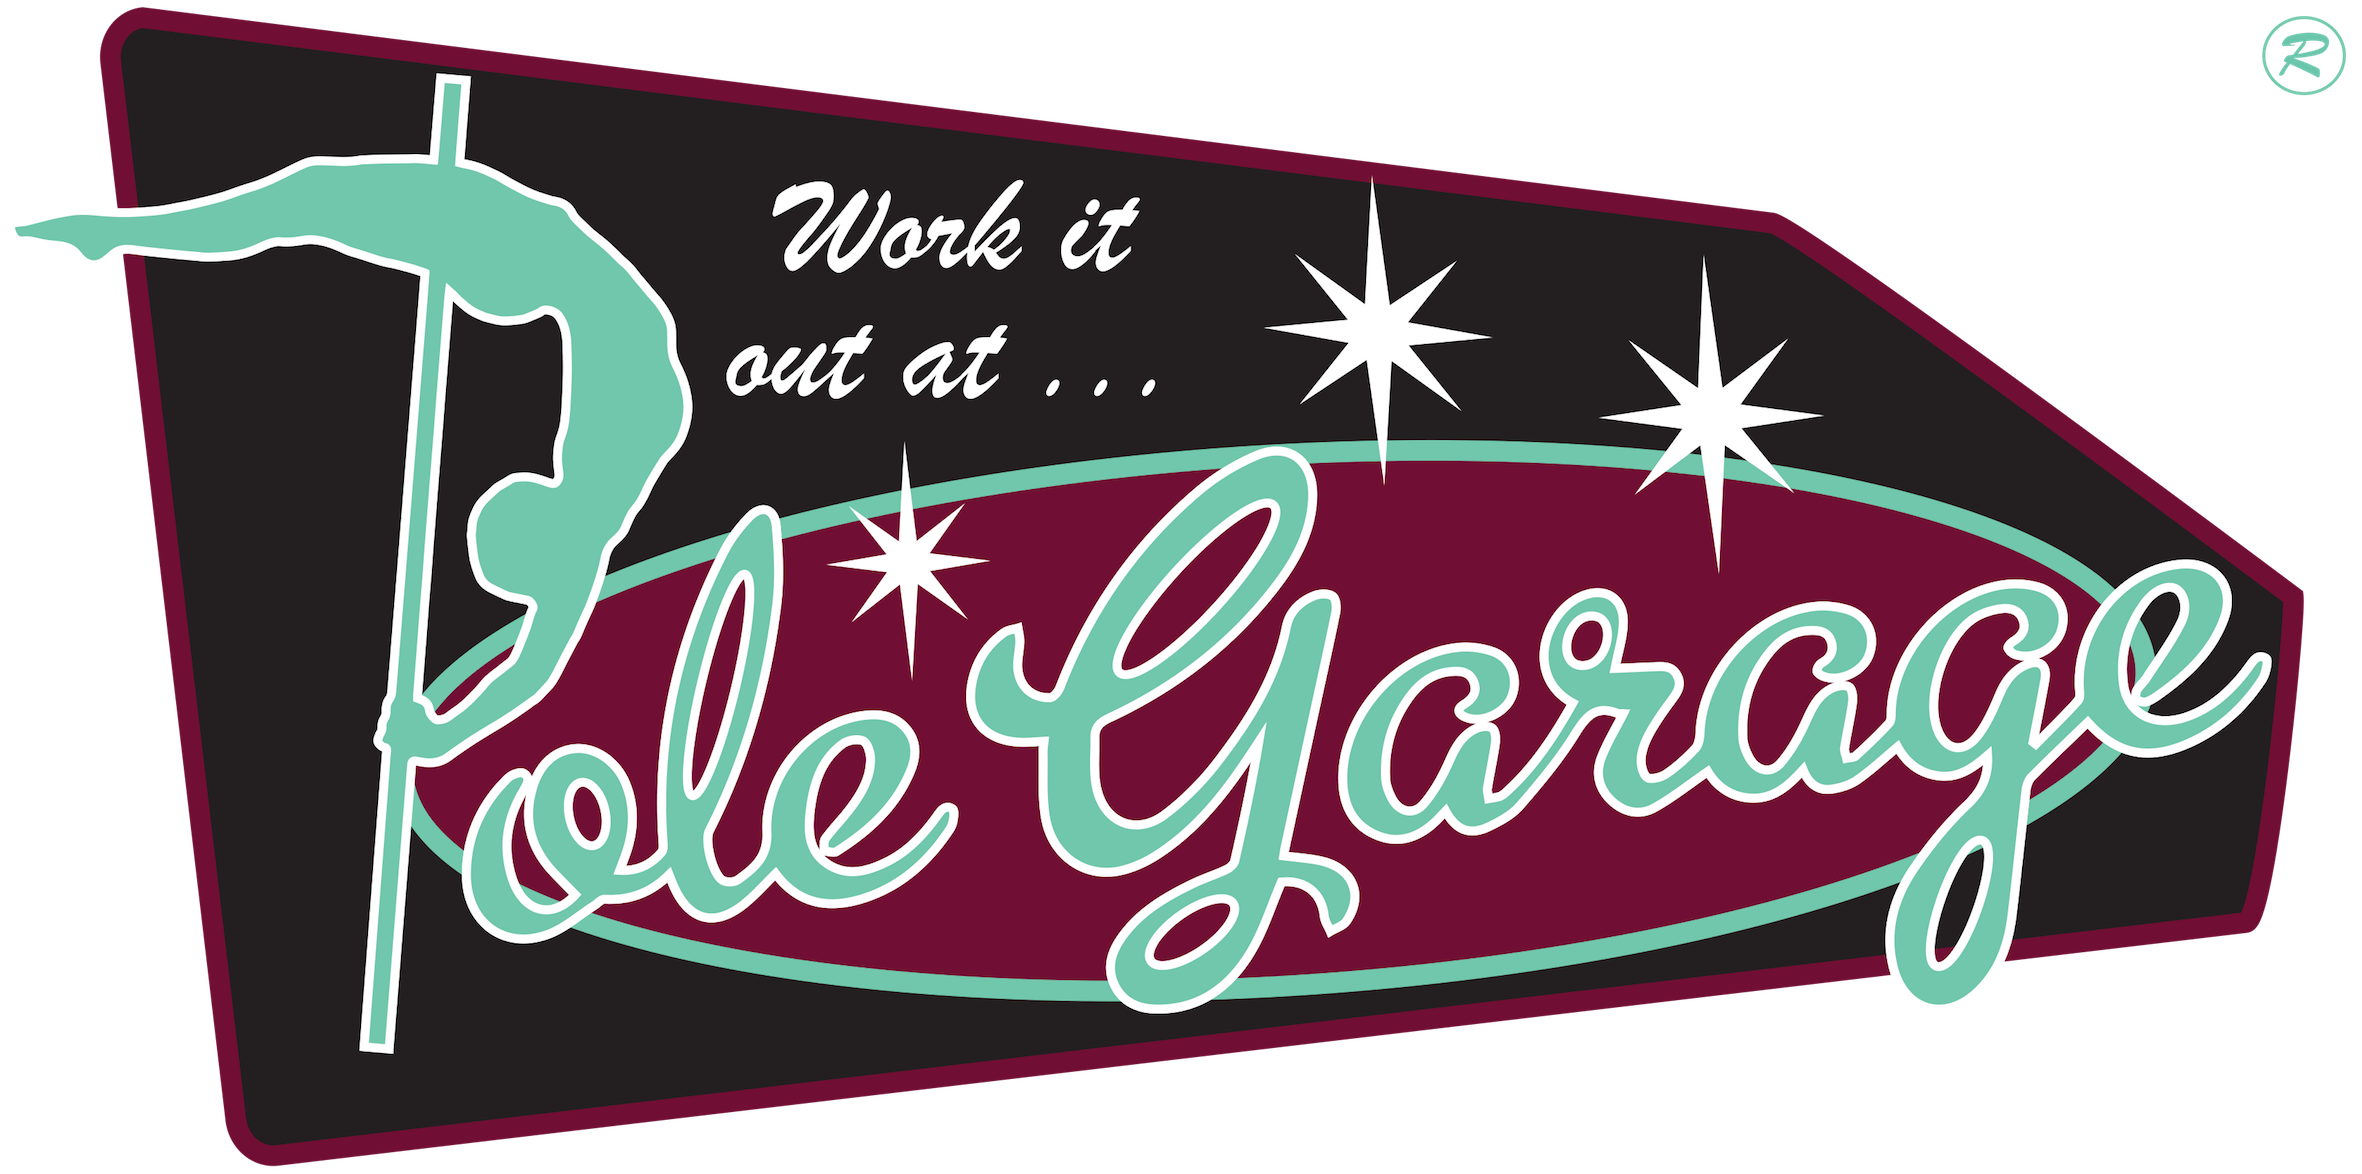 Logo: Pole Garage Hagen